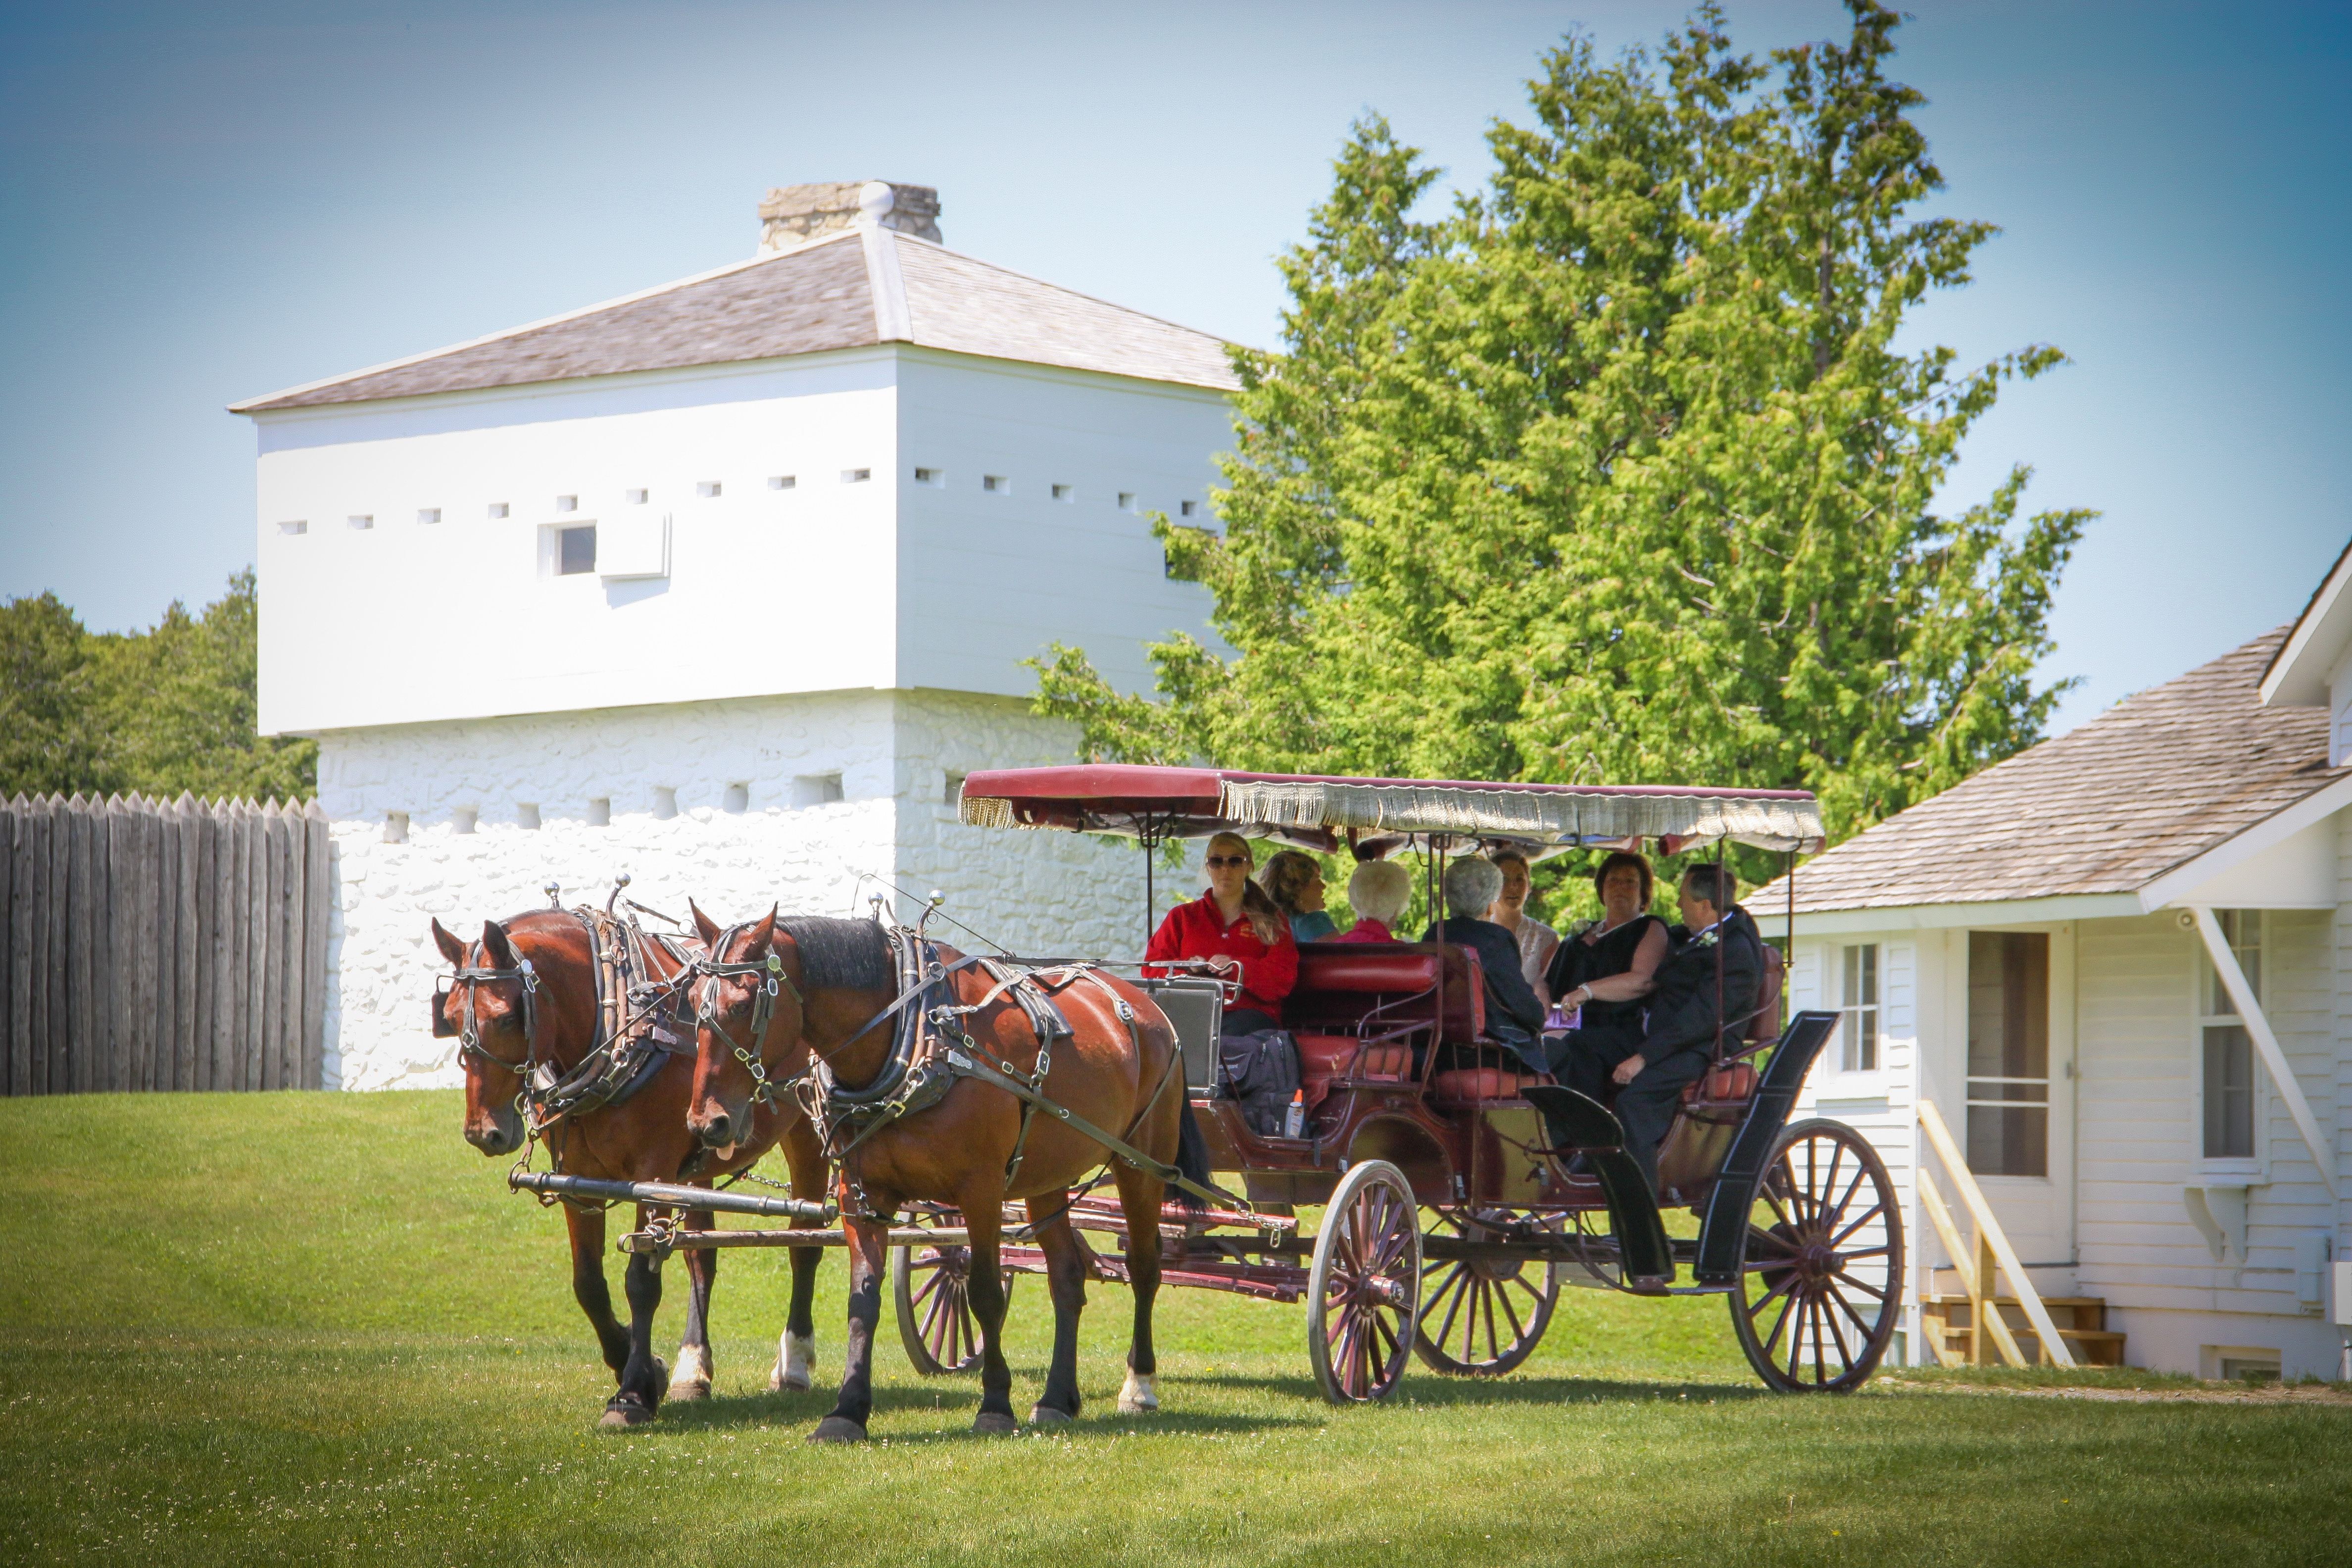 Arriving at the Somewhere In Time Gazebo by a horse-drawn carriage, with the block house from Fort Mackinac behind.